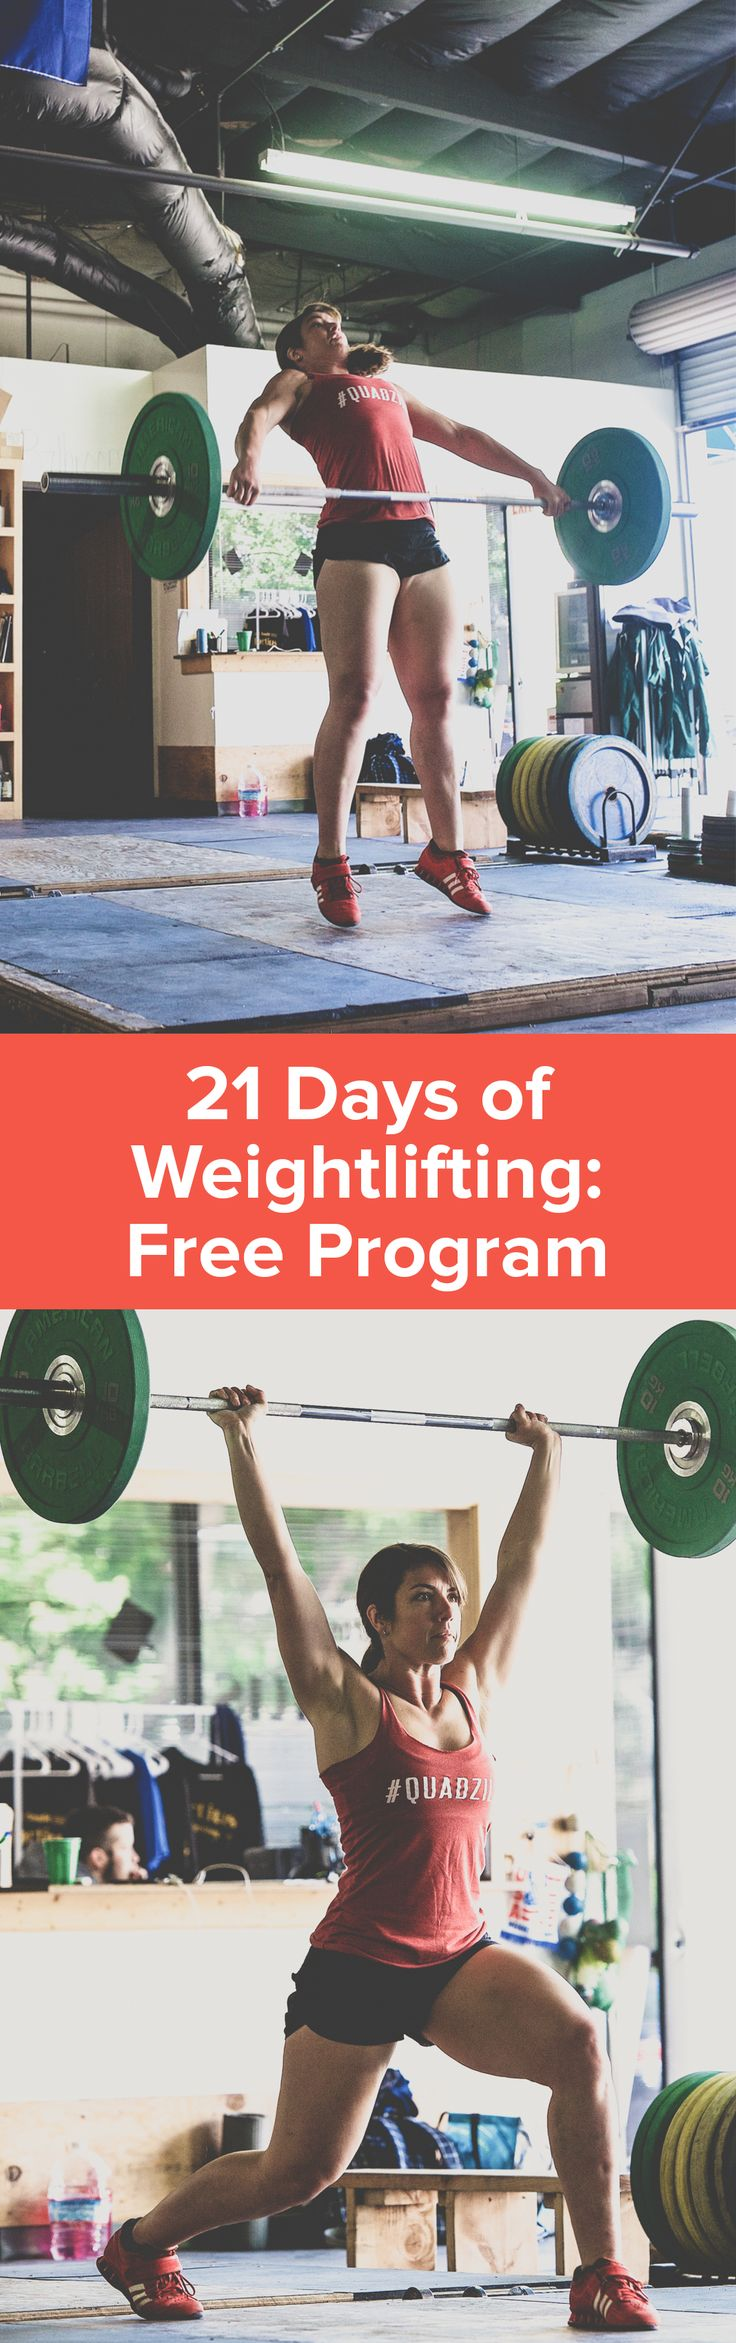 21 Days of Weightlifting | StupidEasyPaleo.com